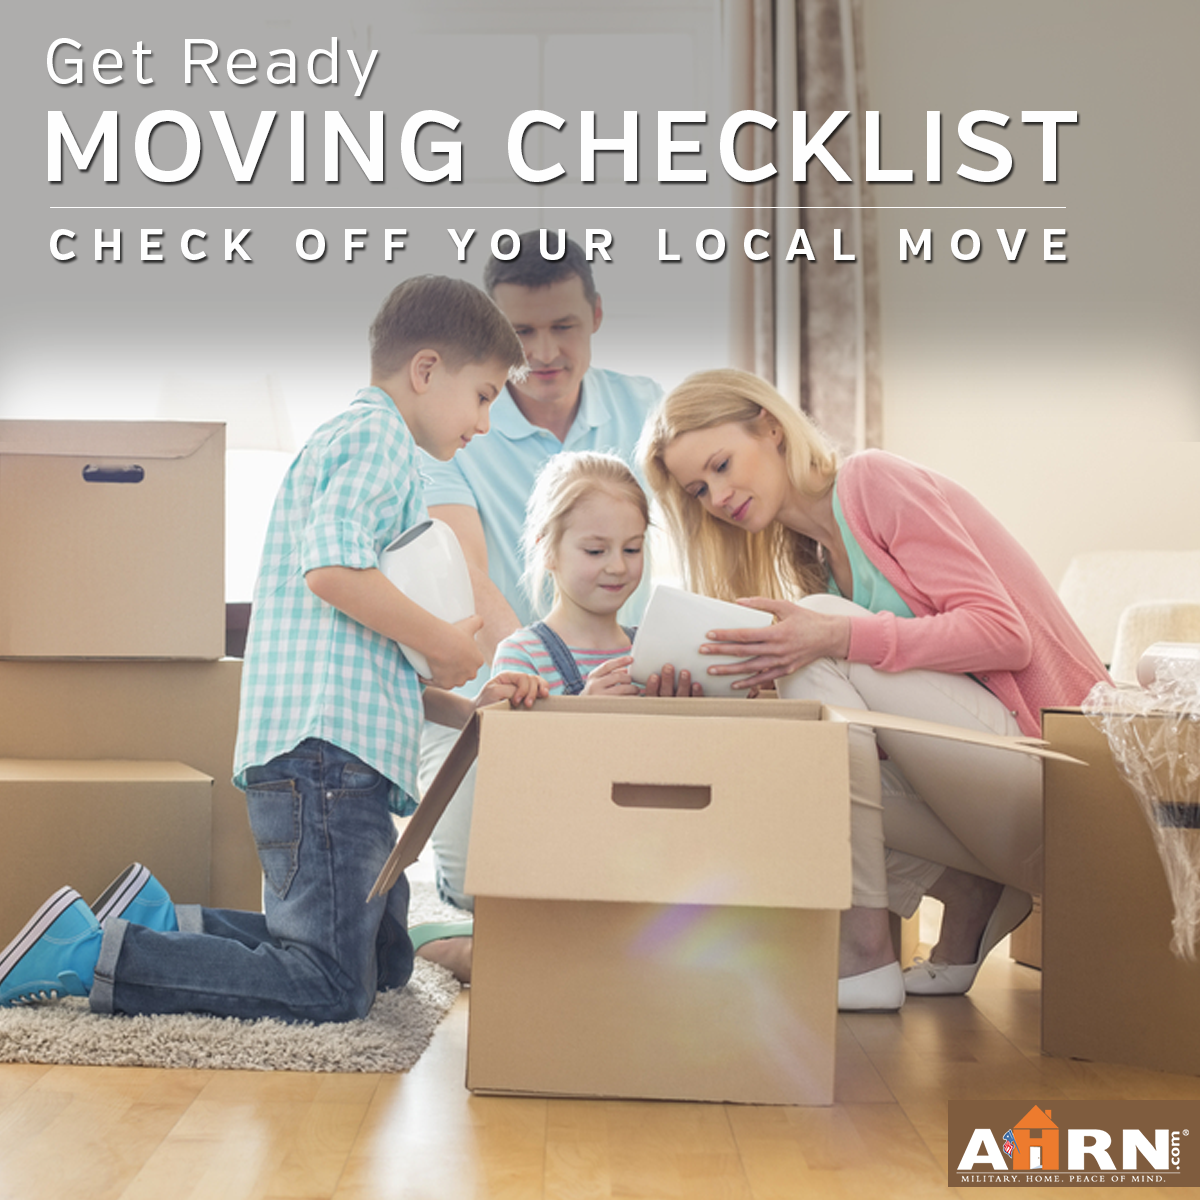 Plan your local move